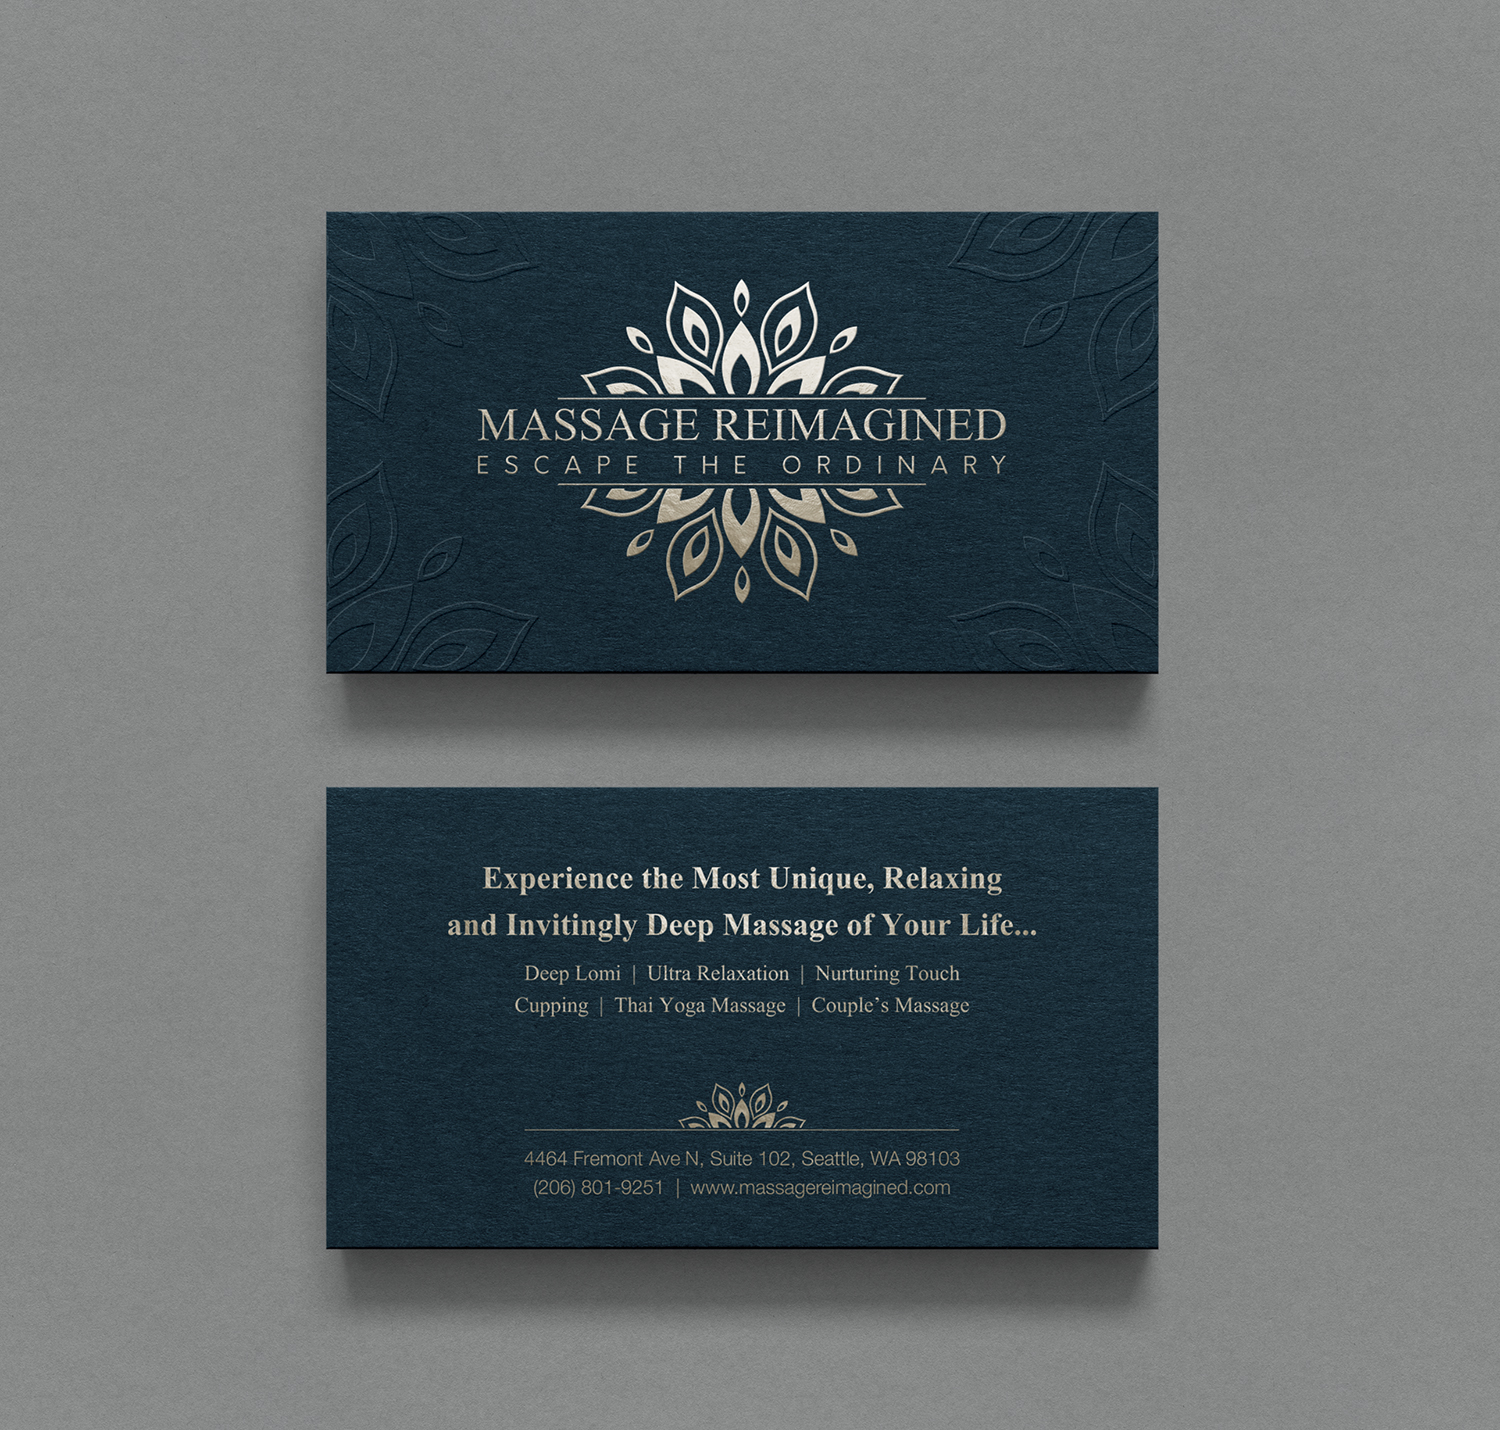 Elegant playful massage business card design for a company by business card design by logodentity for this project design 16331209 reheart Image collections